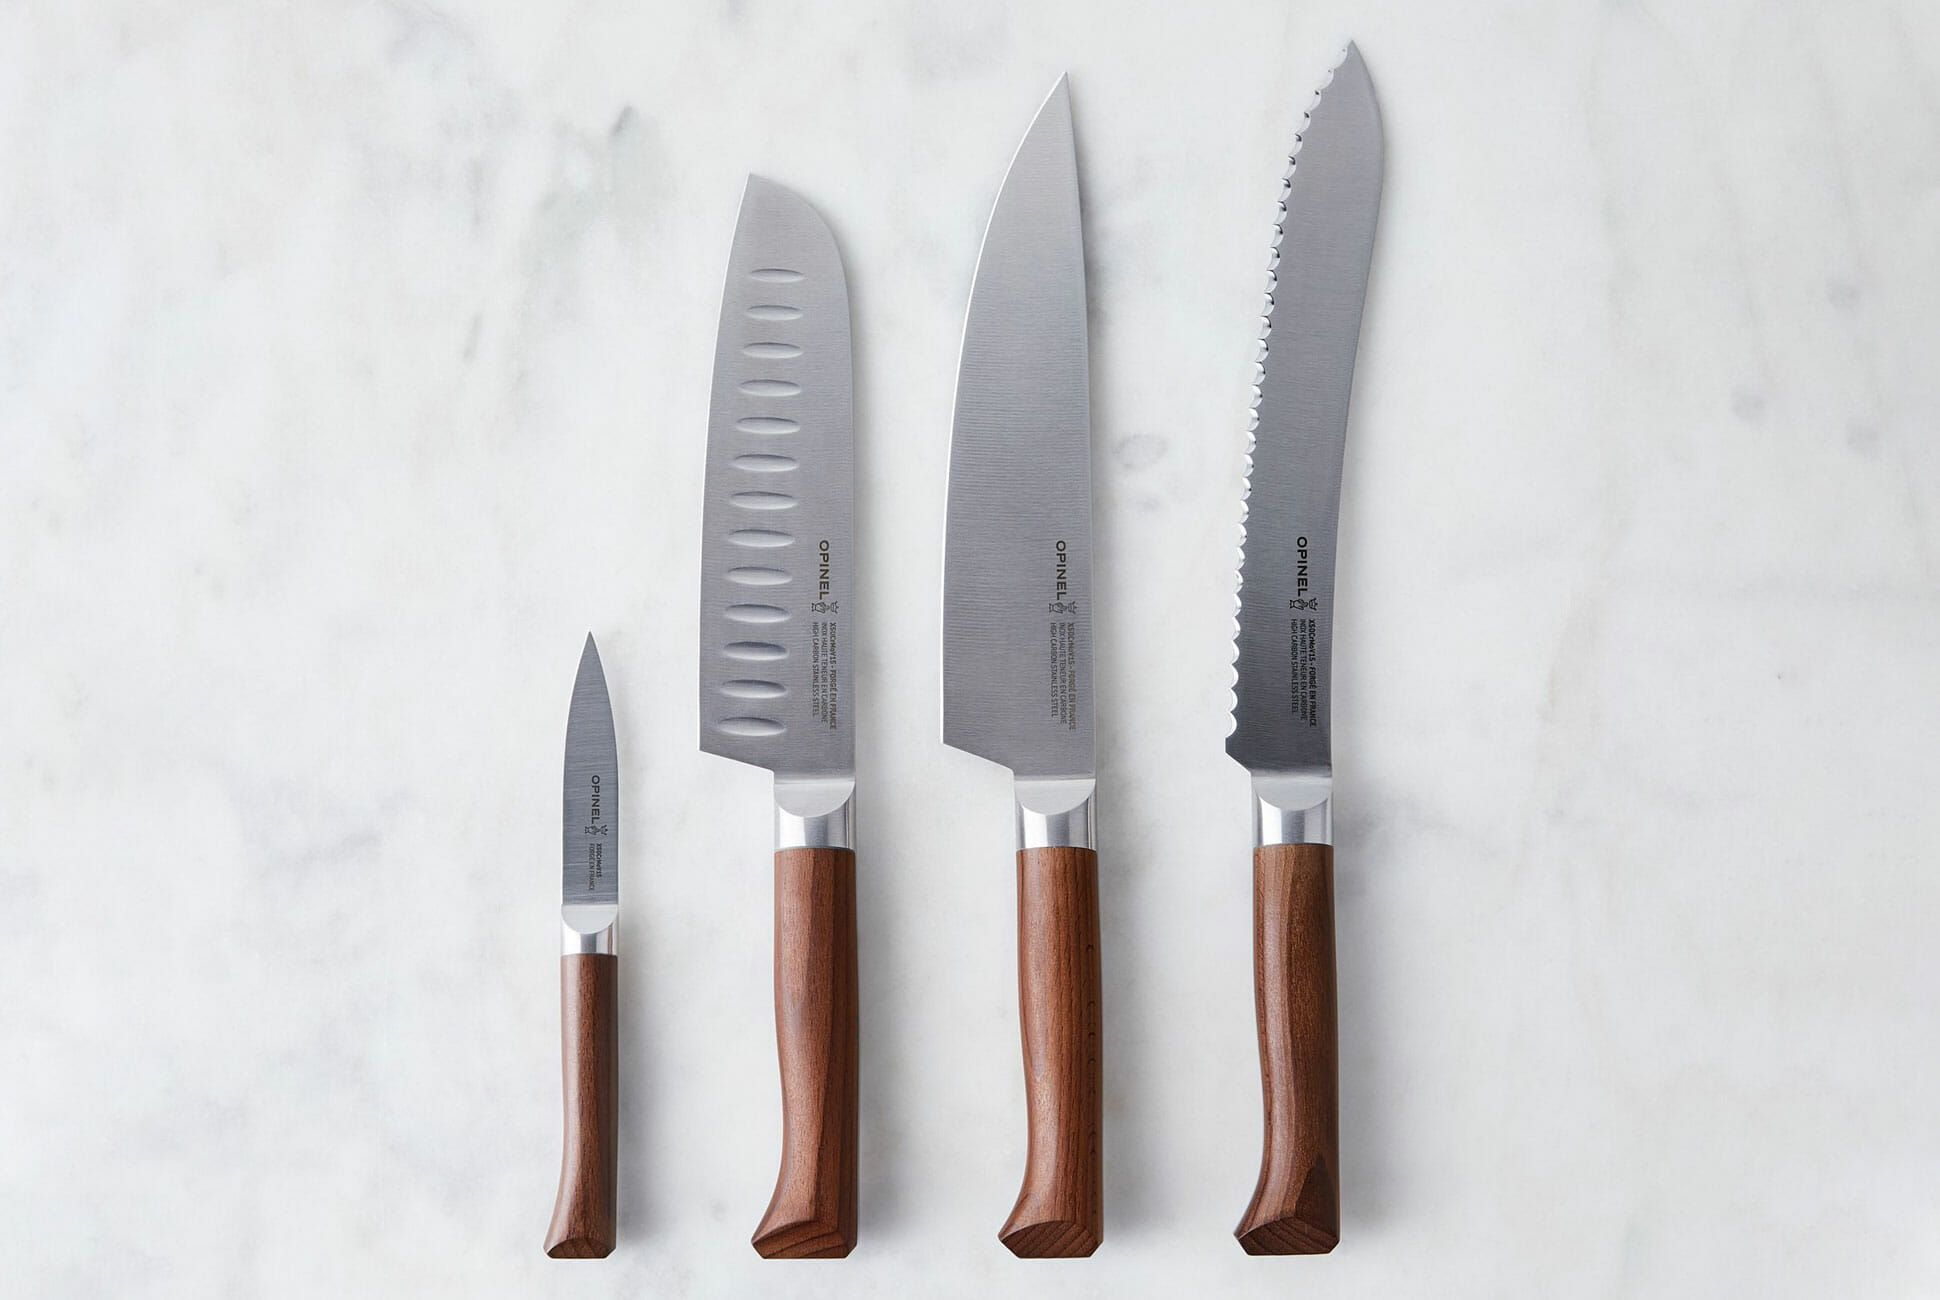 These Gift-Worthy Kitchen Knives Were Made By a Famous ...